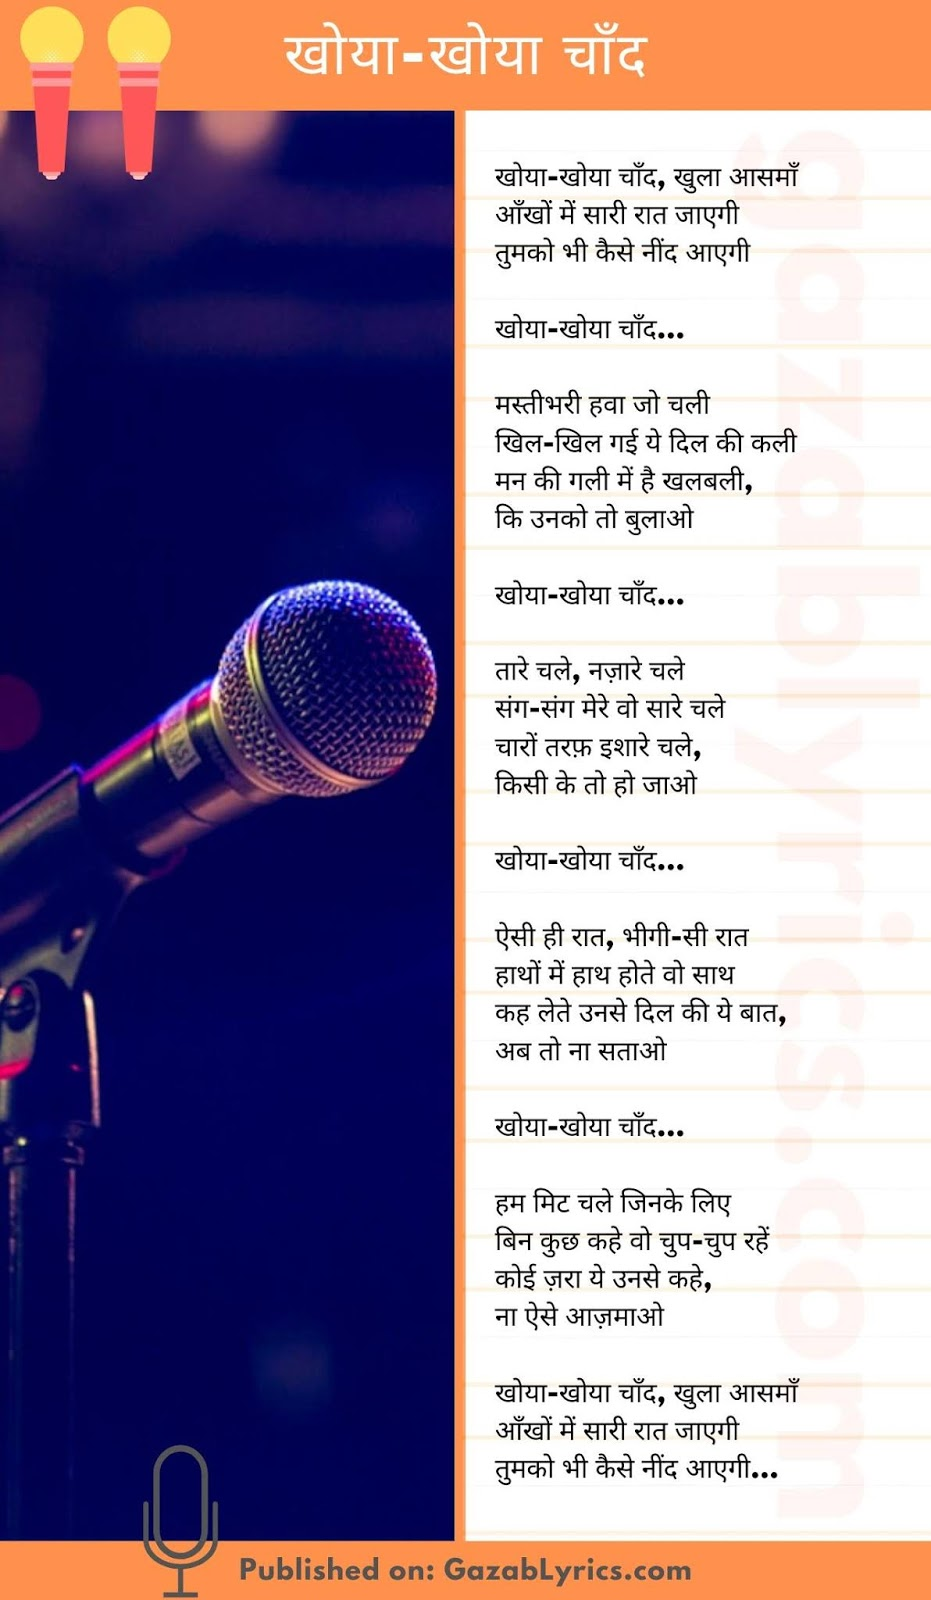 Khoya Khoya Chand song lyrics image